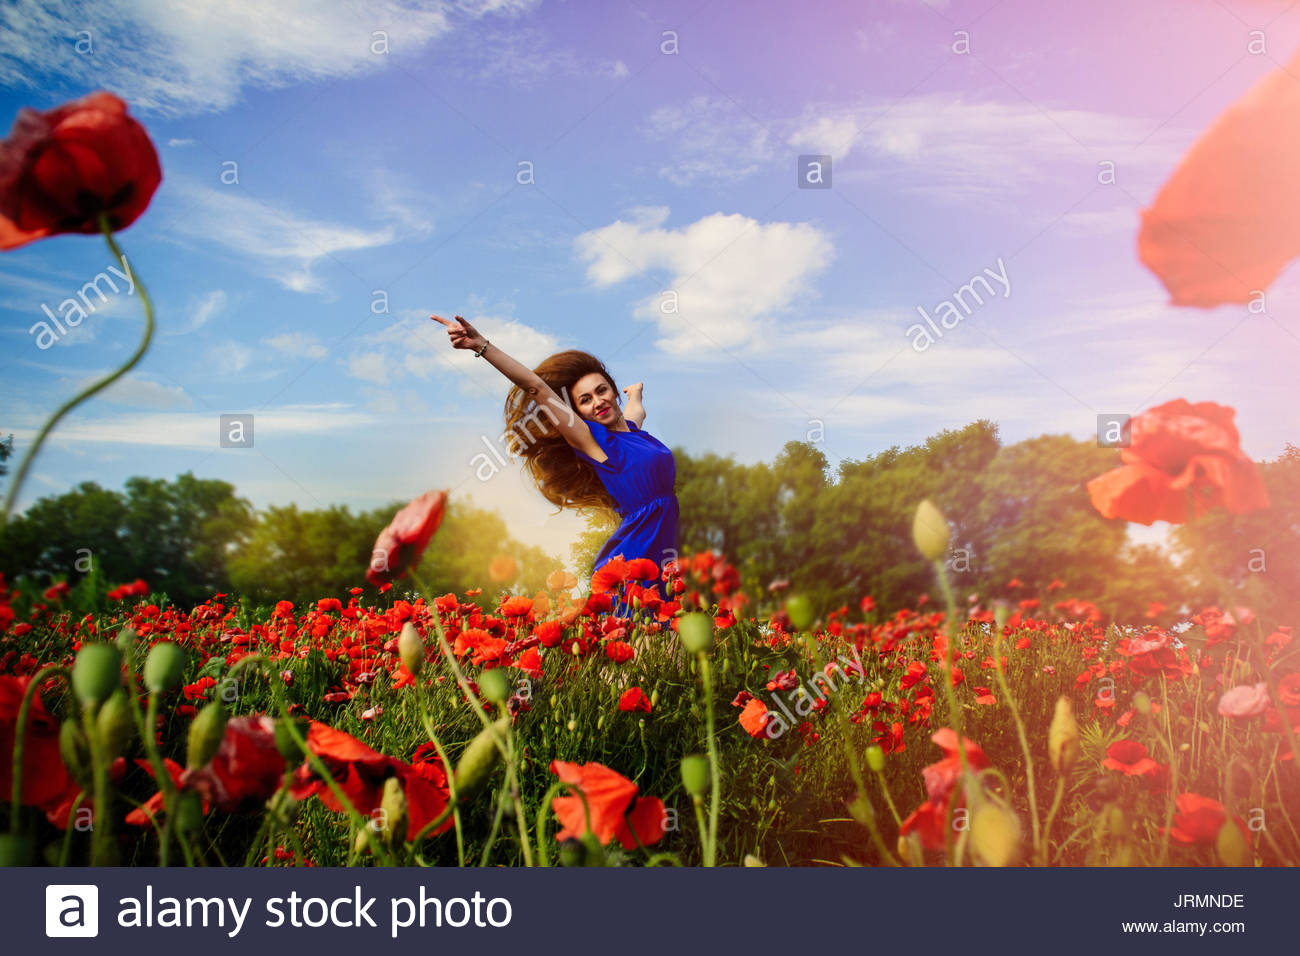 Girl jumping out of flowers Stock Photo